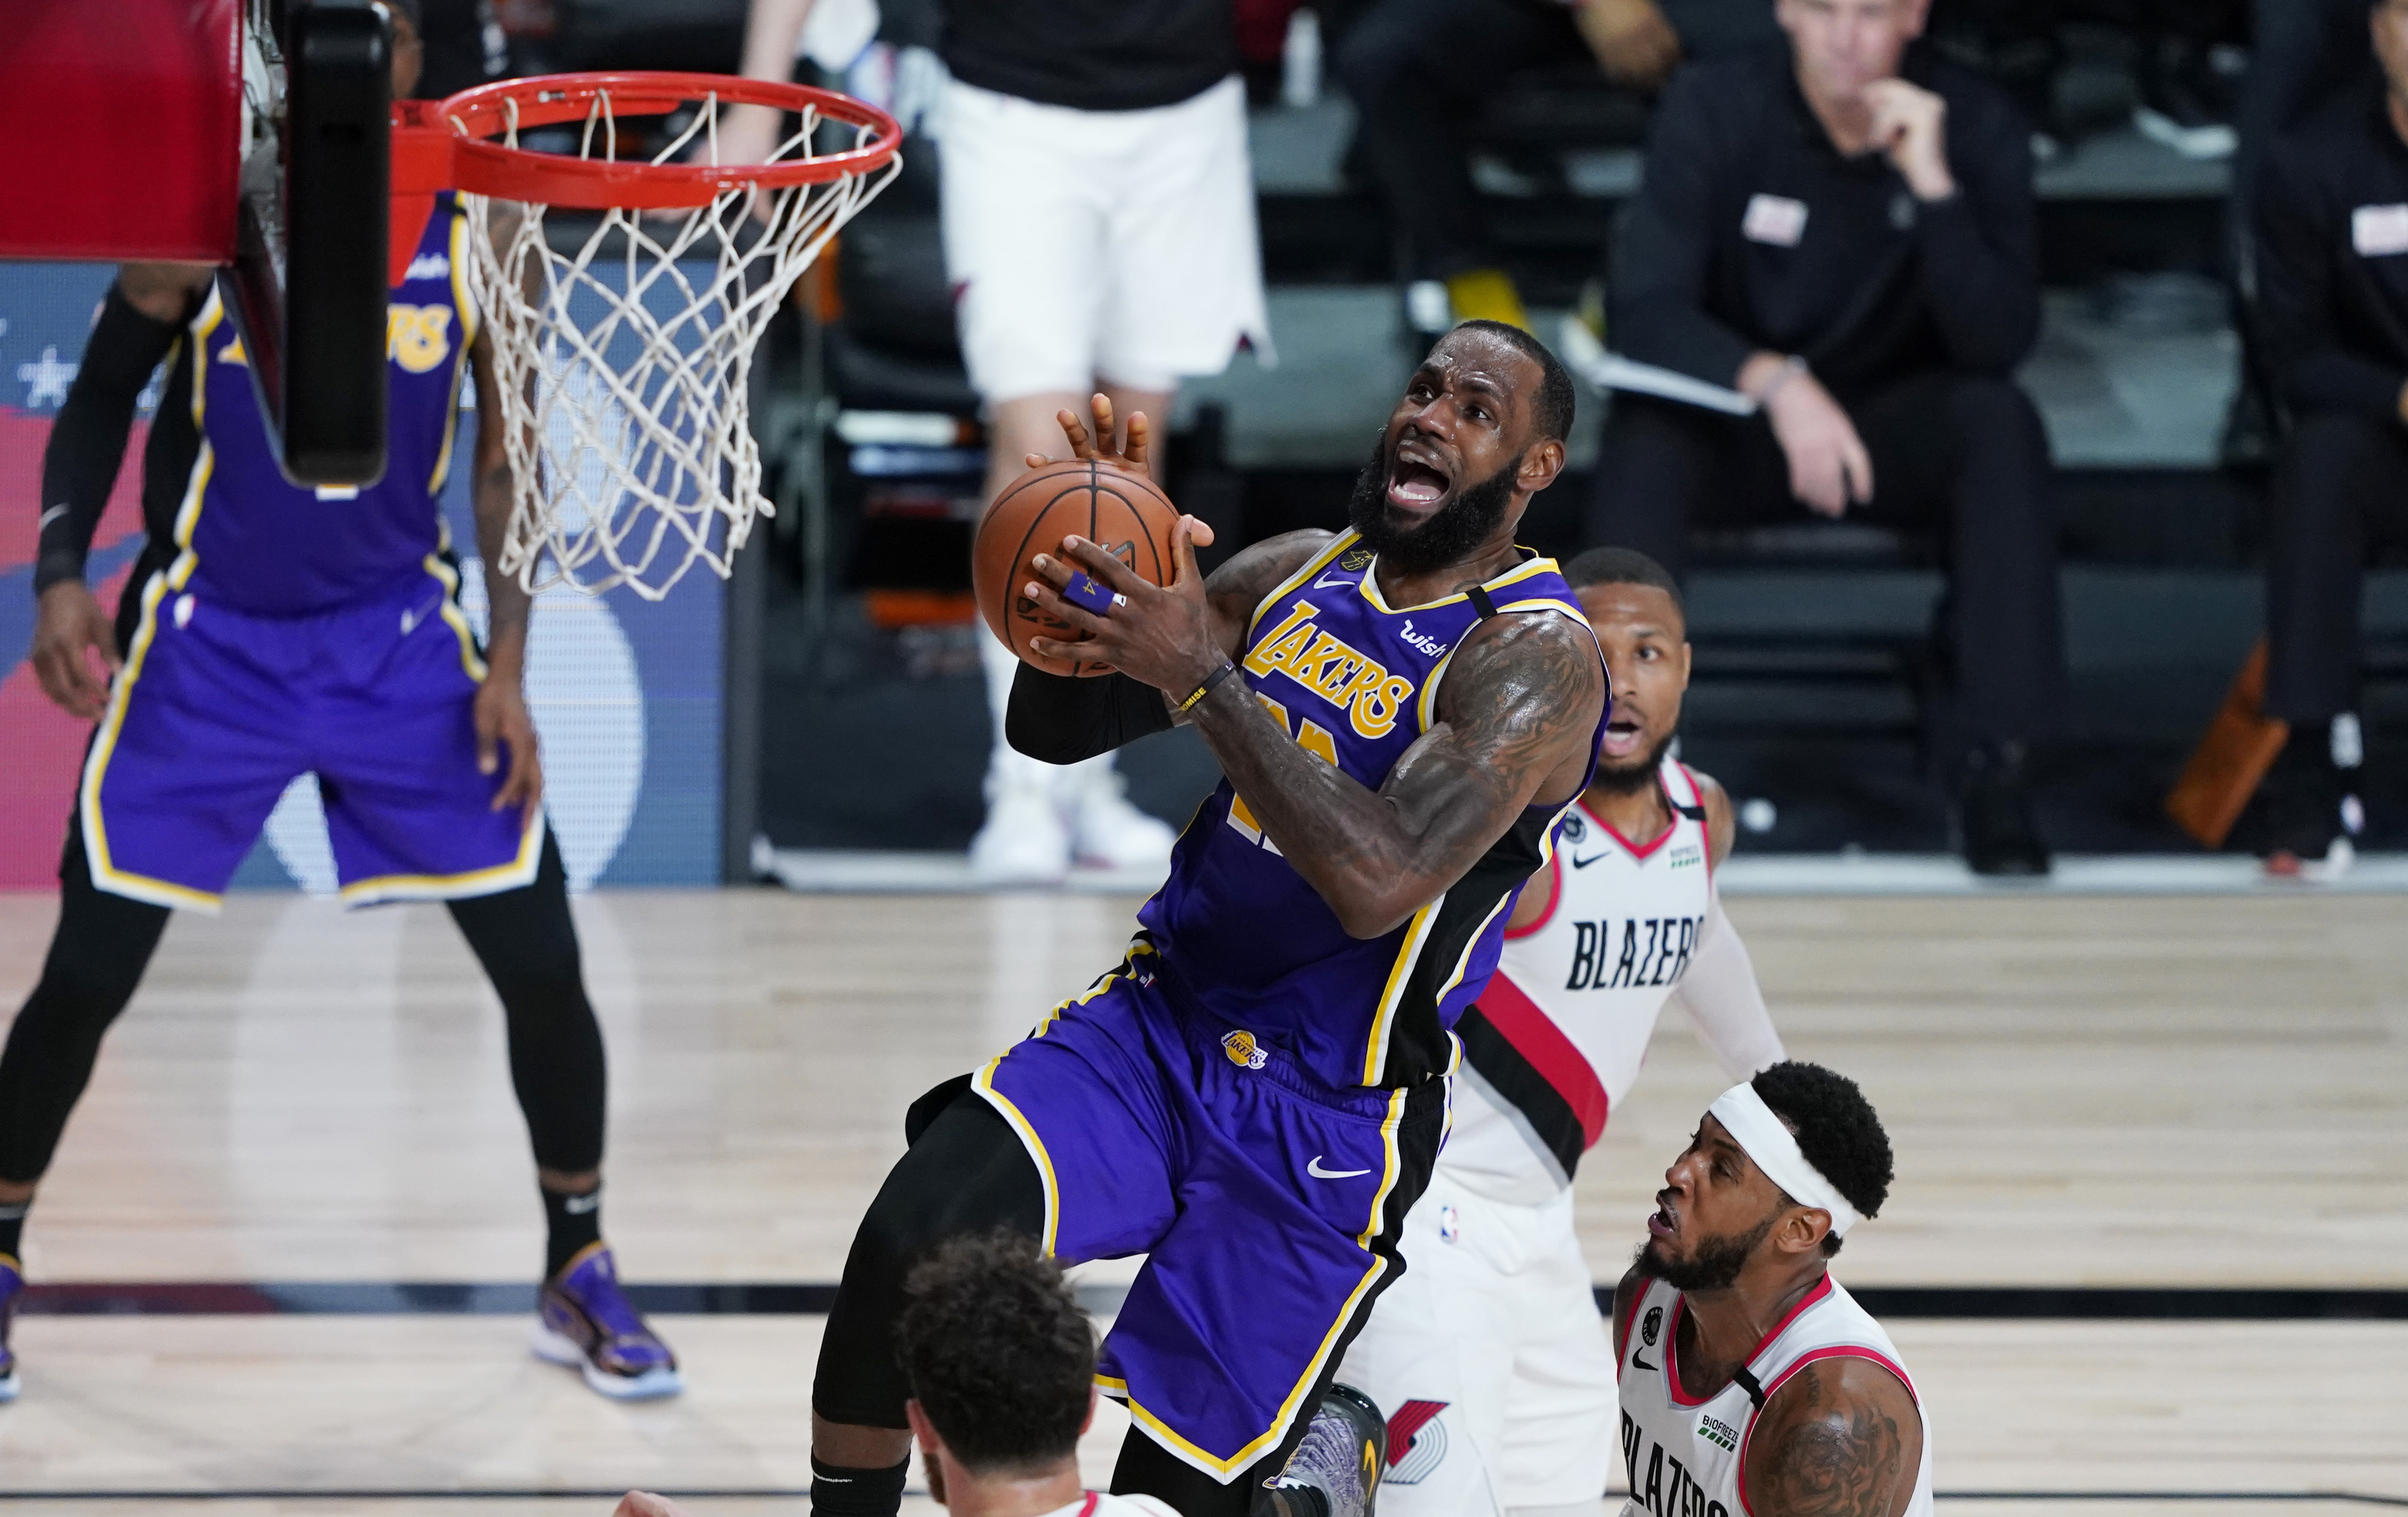 Lakers Vs Trail Blazers Live Stream How To Watch Game 5 Of The Nba Playoffs Online Tom S Guide